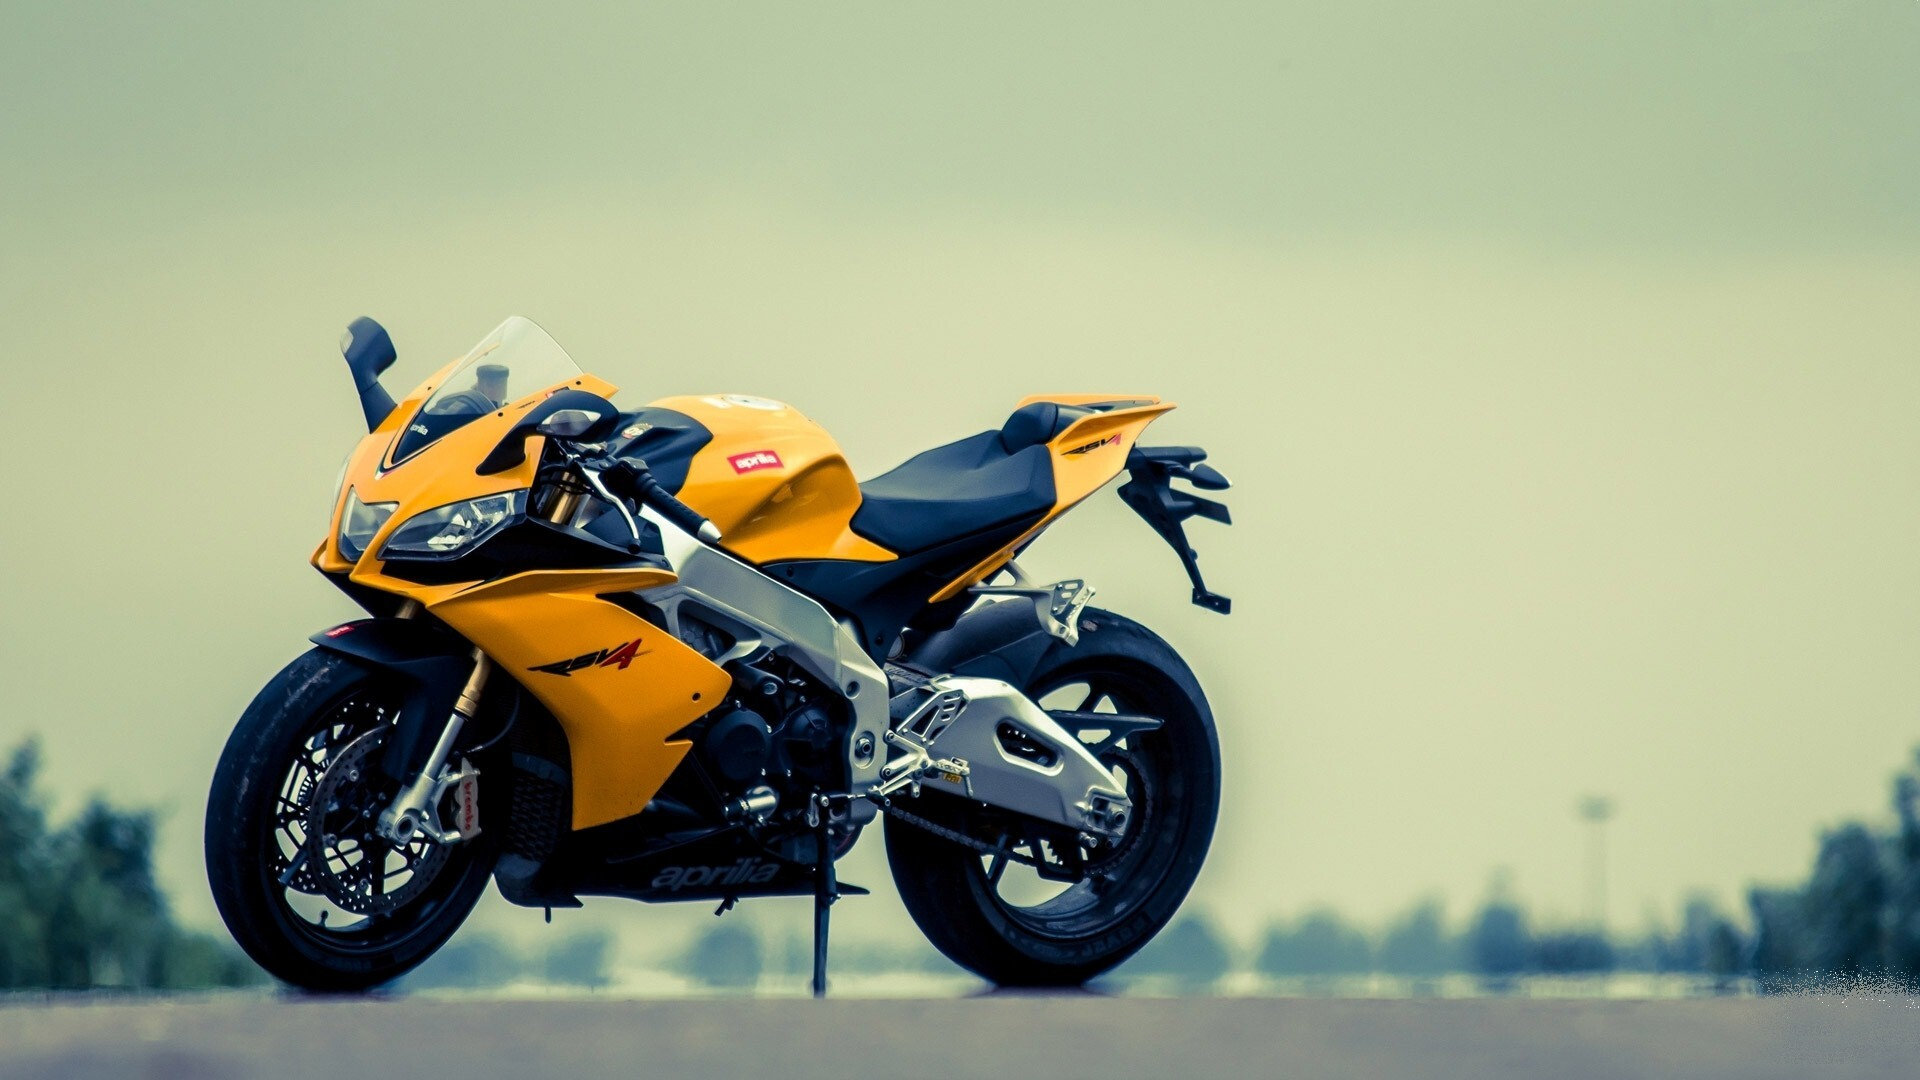 Background Images For Editing Hd Bike: Best Aprilia Yellow Bike HD Photo